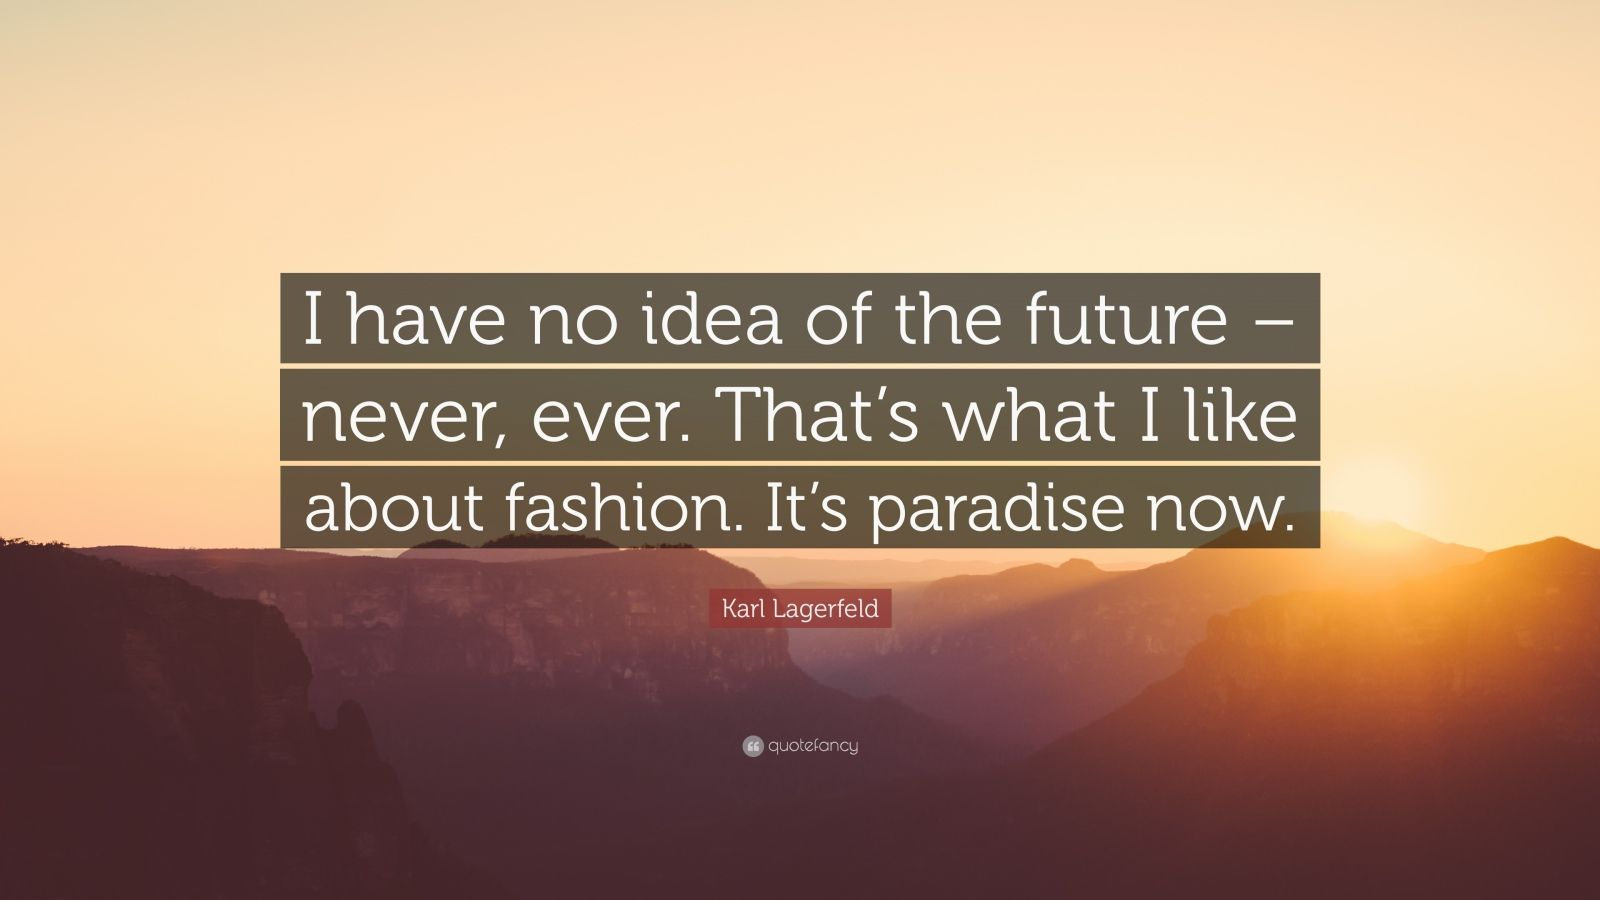 """Karl Lagerfeld Quote: """"I have no idea of the future – never, ever. That's what I like about fashion. It's paradise now."""""""